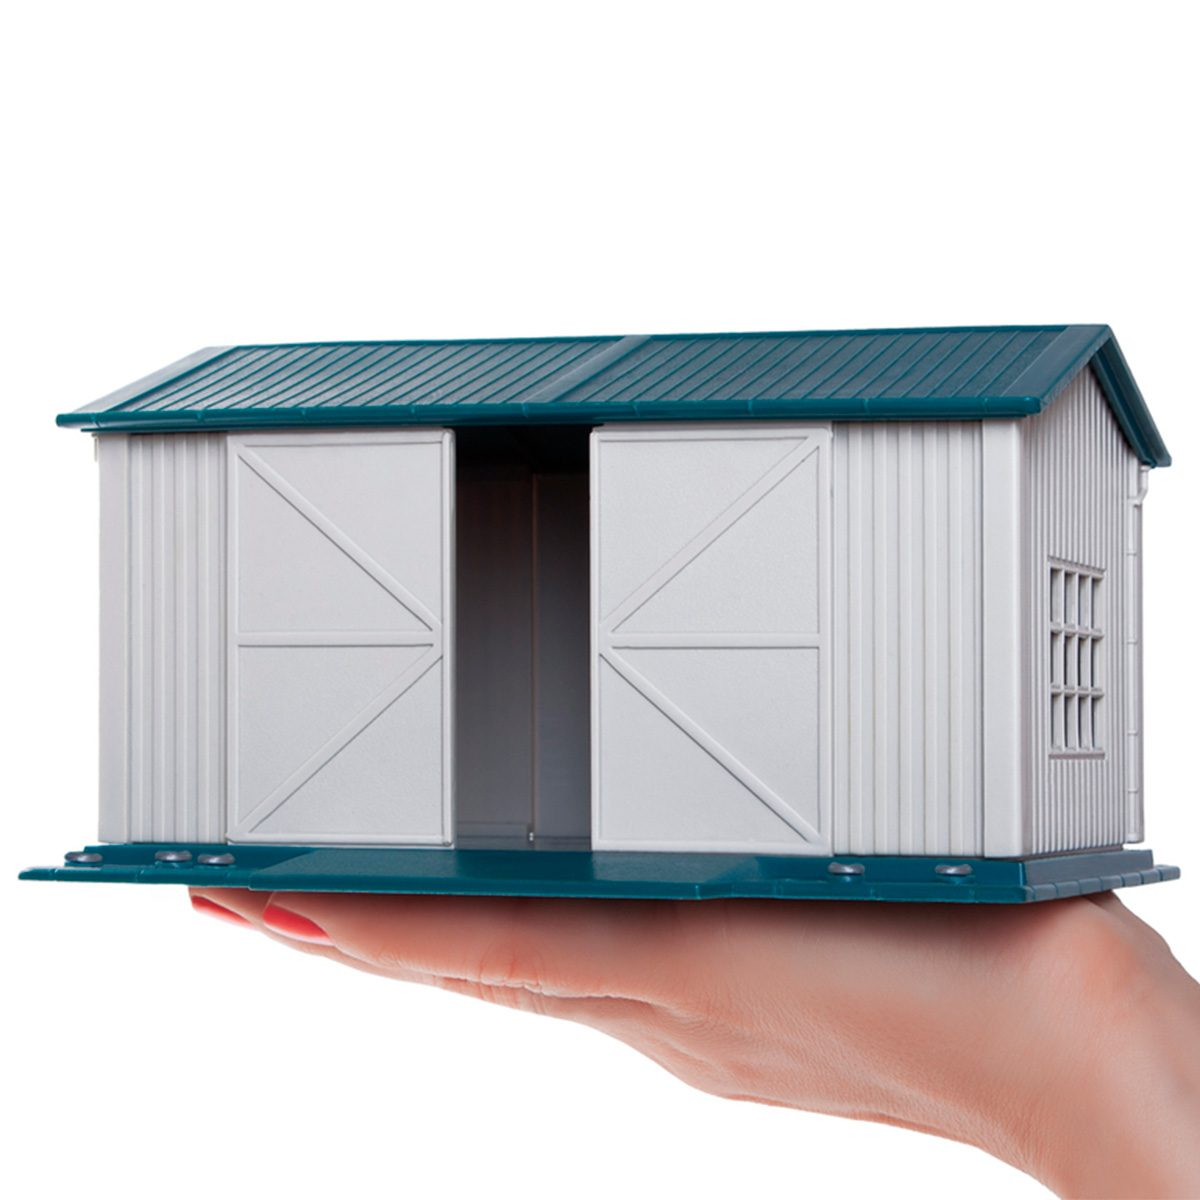 15 Shed Building Mistakes and How to Avoid Them